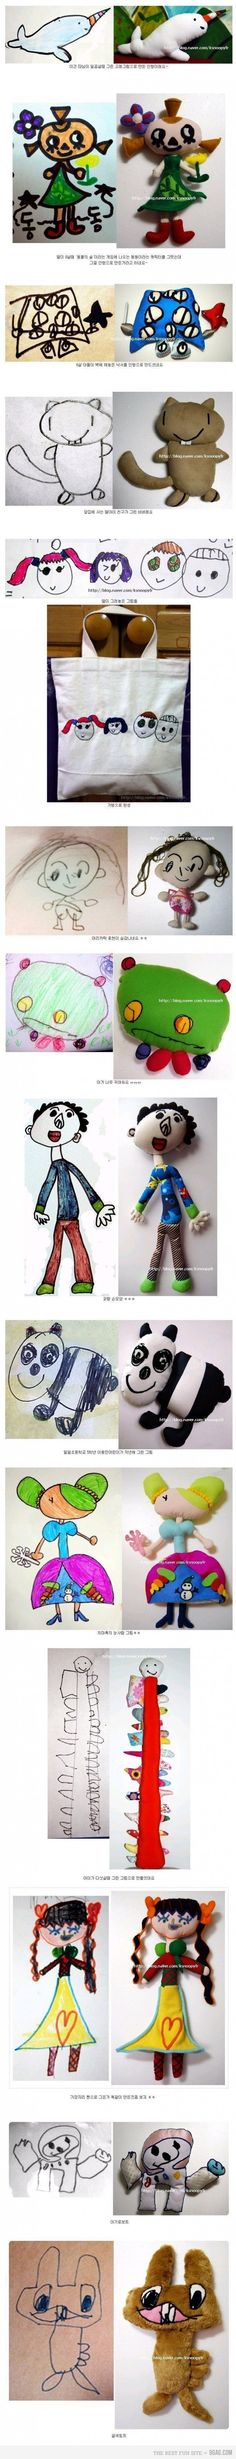 Turn your kid's drawings into a stuffed toy! So creative.